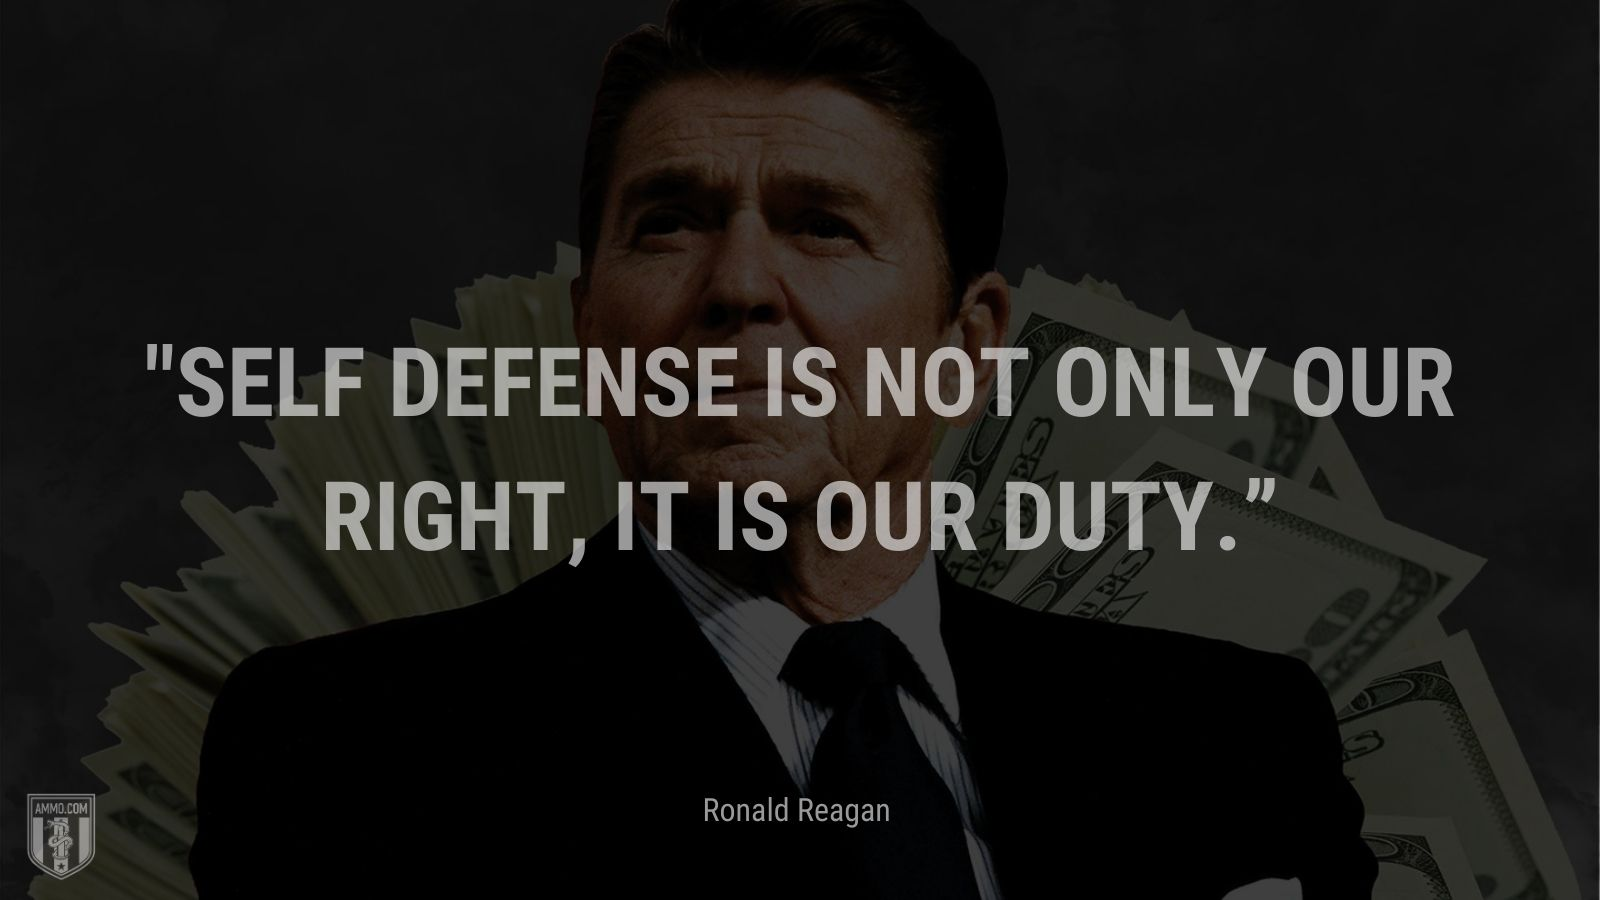 """""""Self defense is not only our right, it is our duty."""" - Ronald Reagan"""